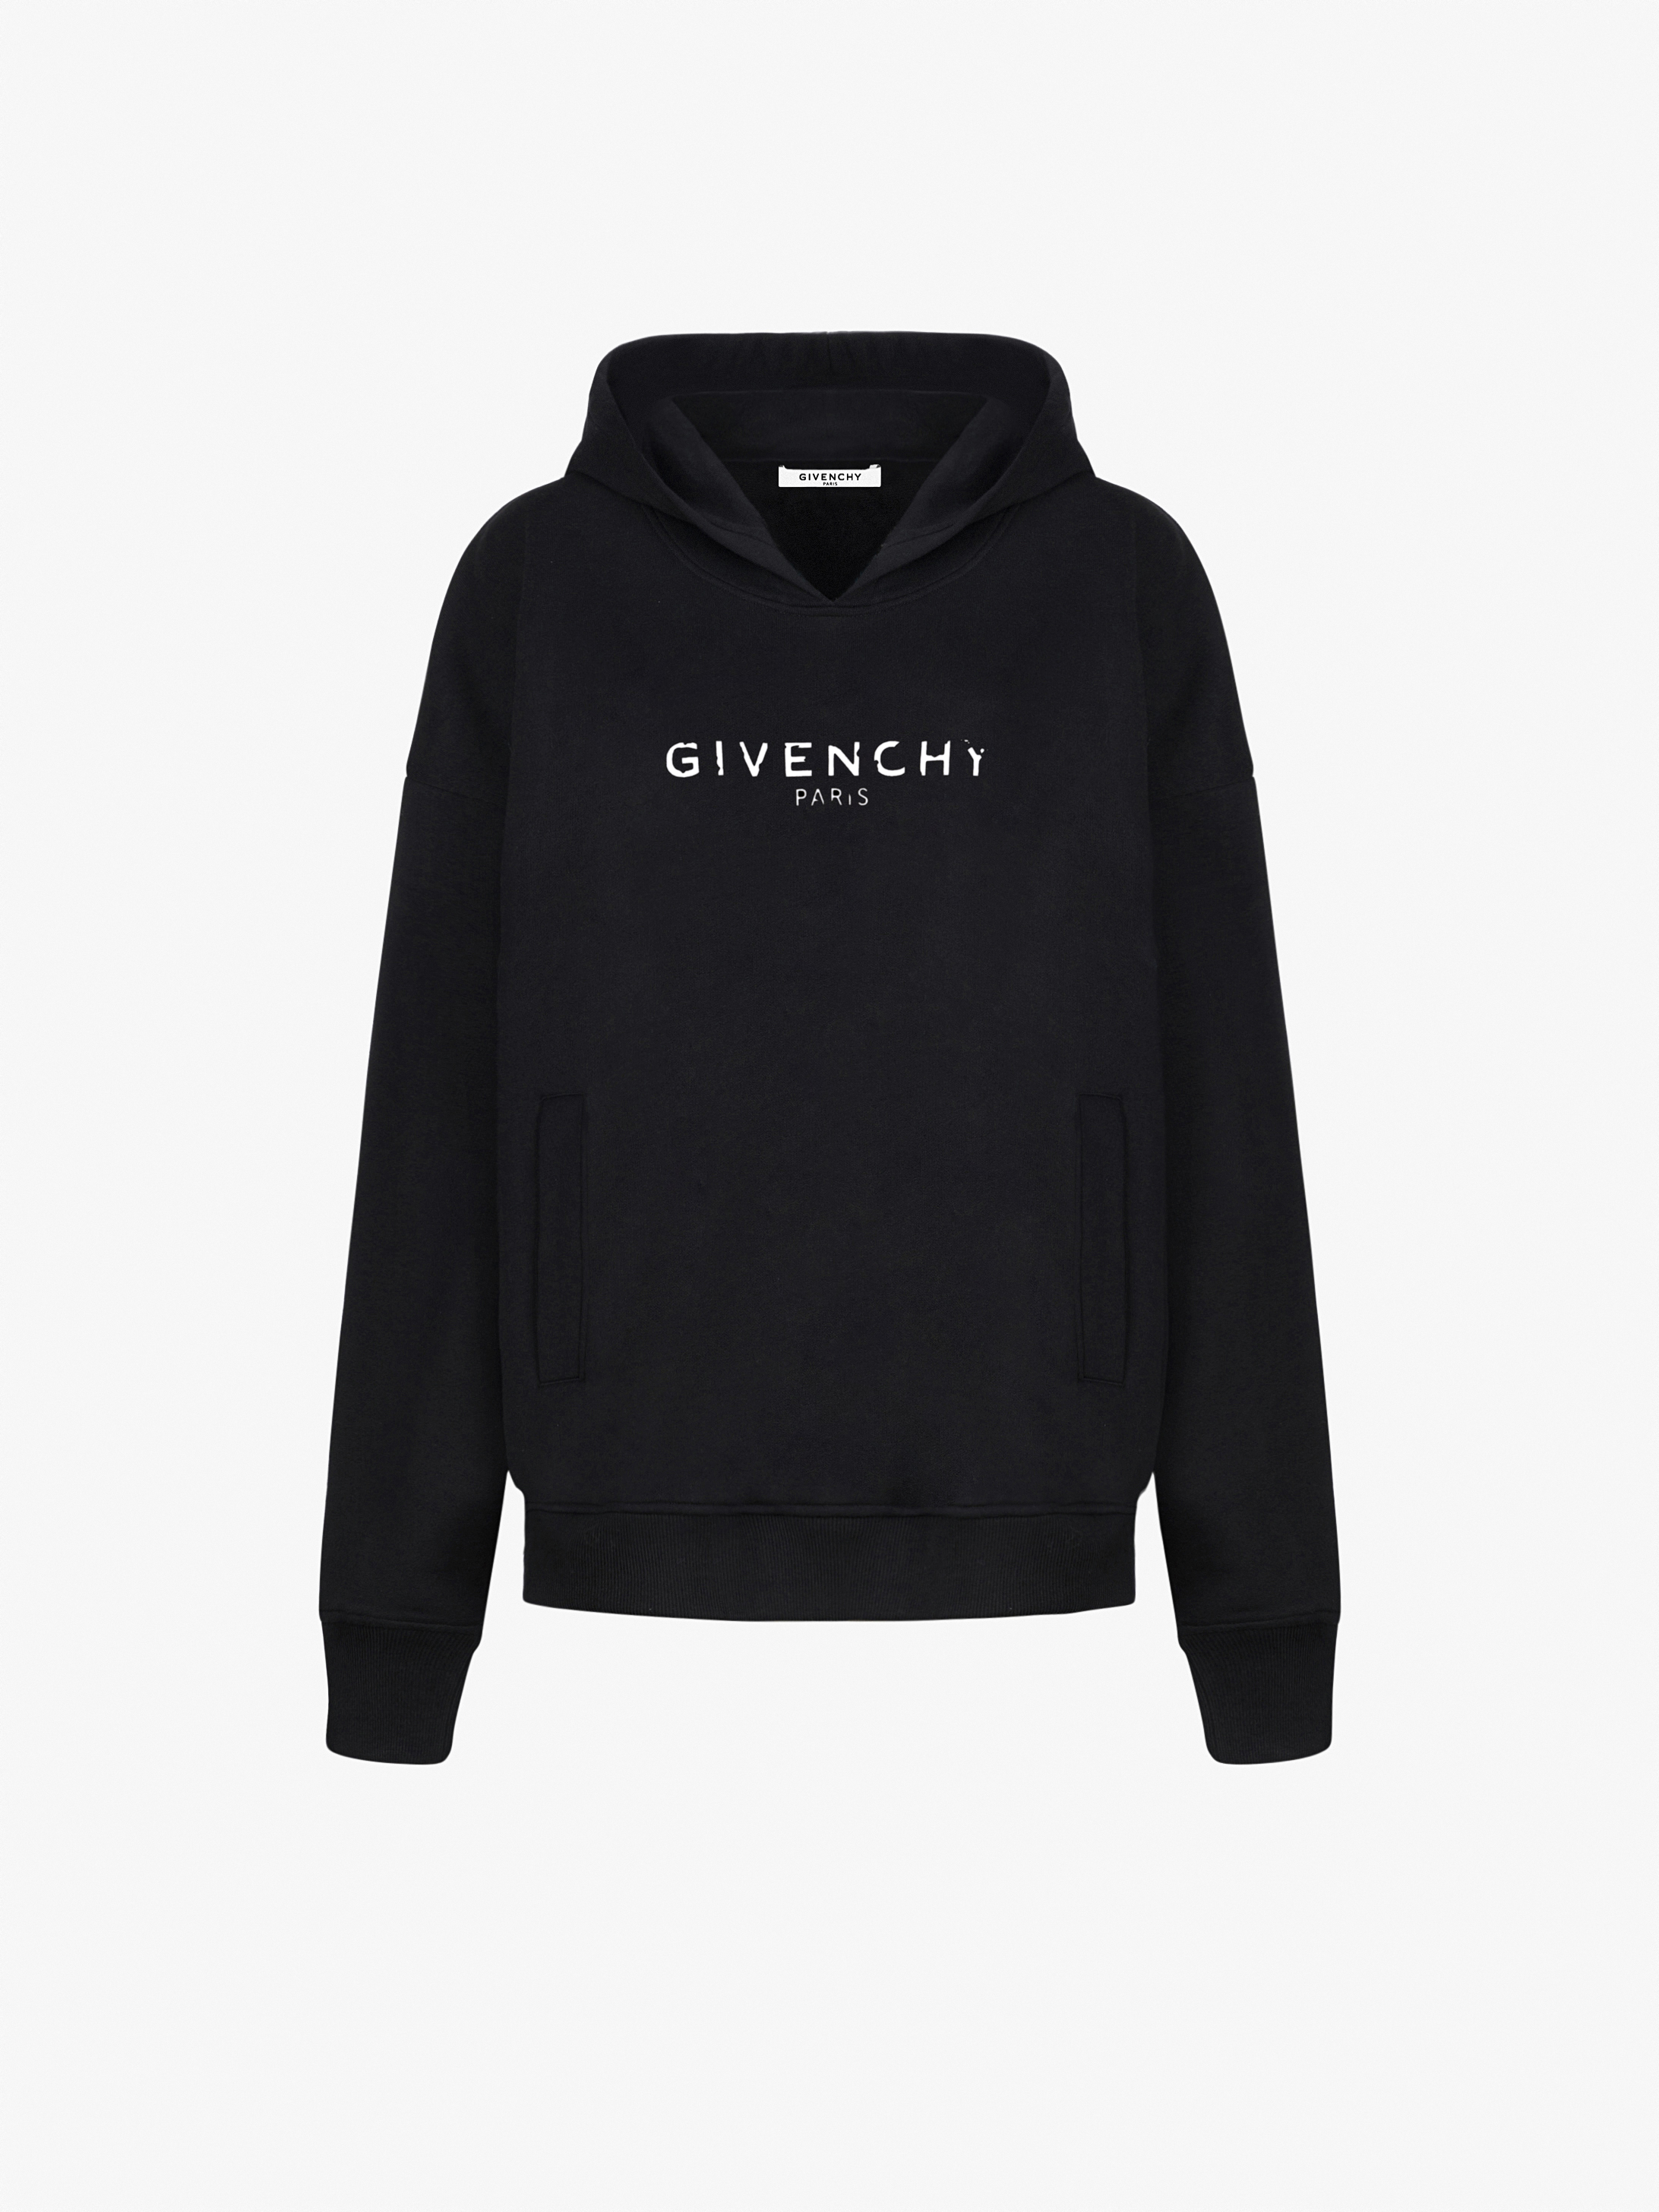 GIVENCHY PARIS oversized vintage hoodie